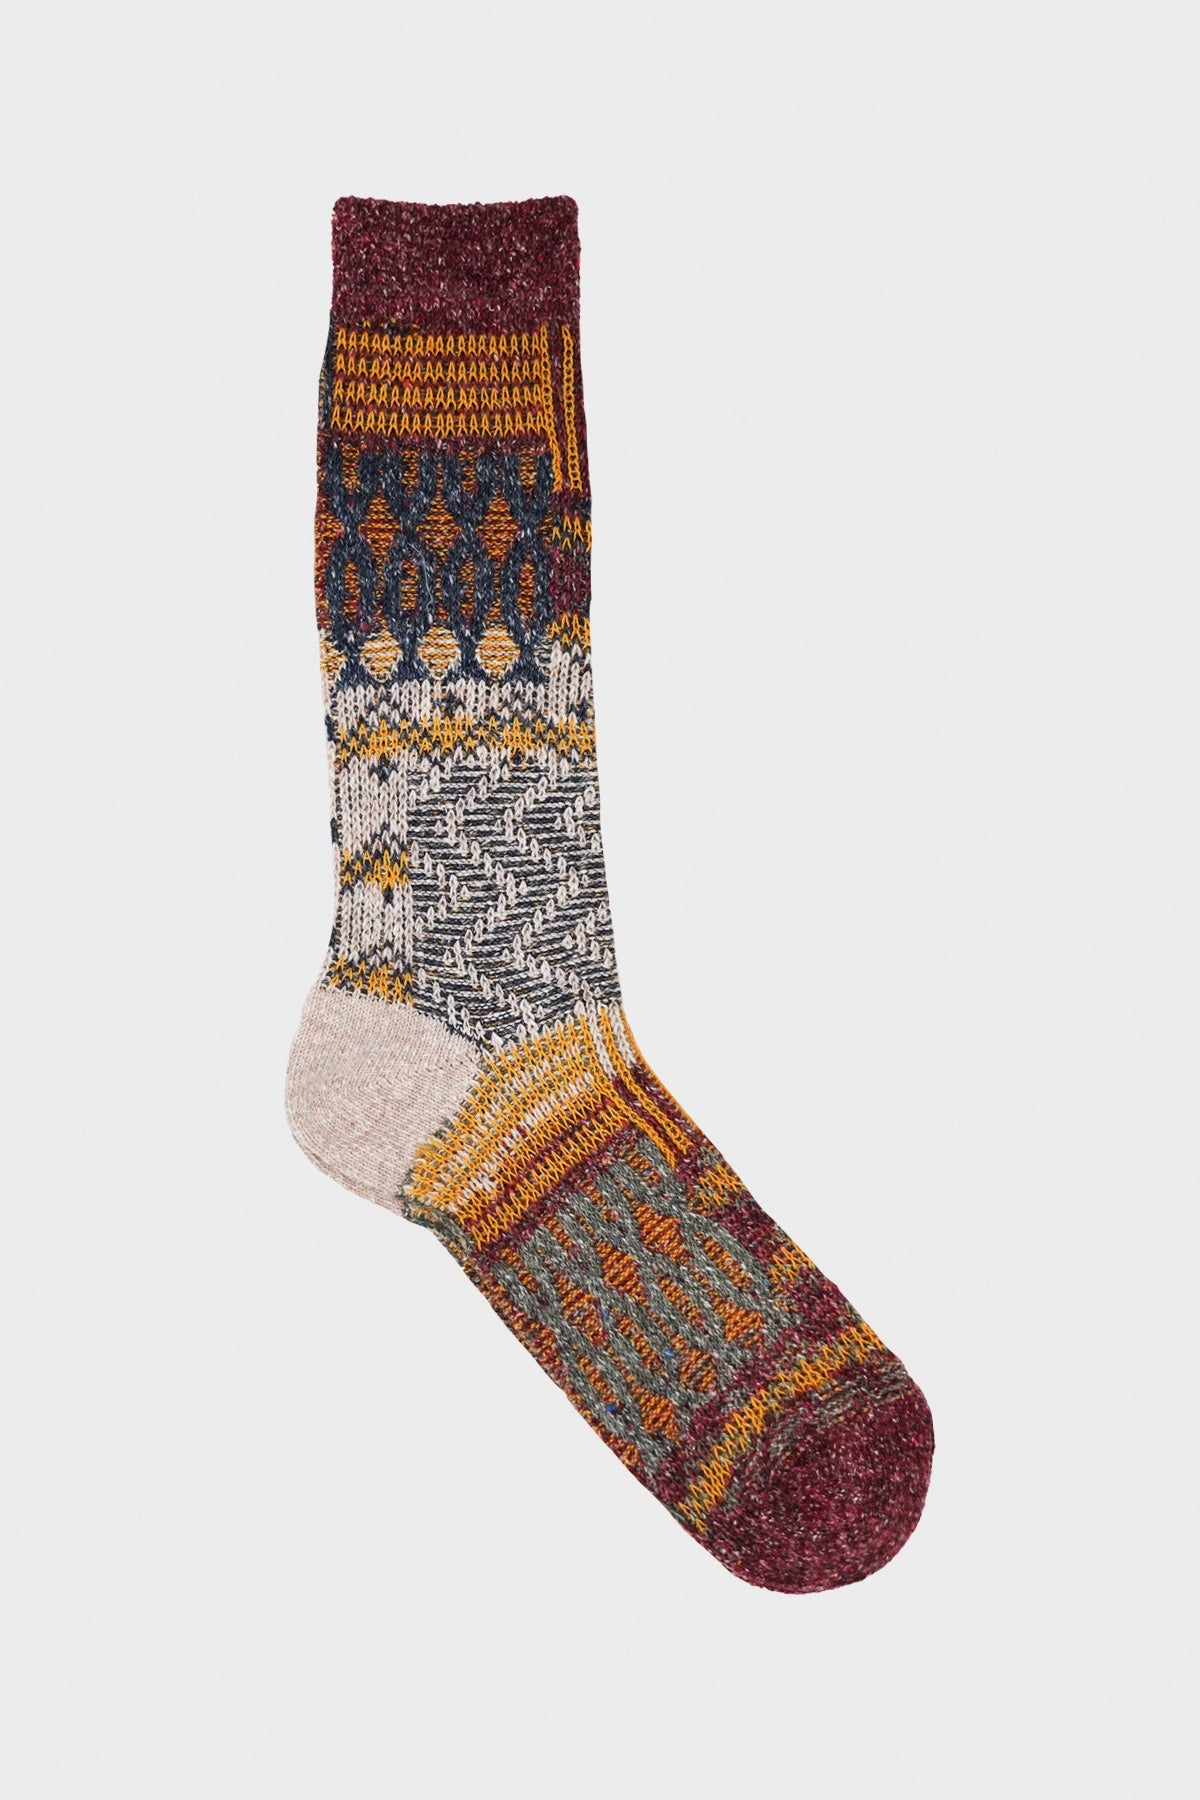 anonymous ism Multi Links Jacquard Crew socks - Wine